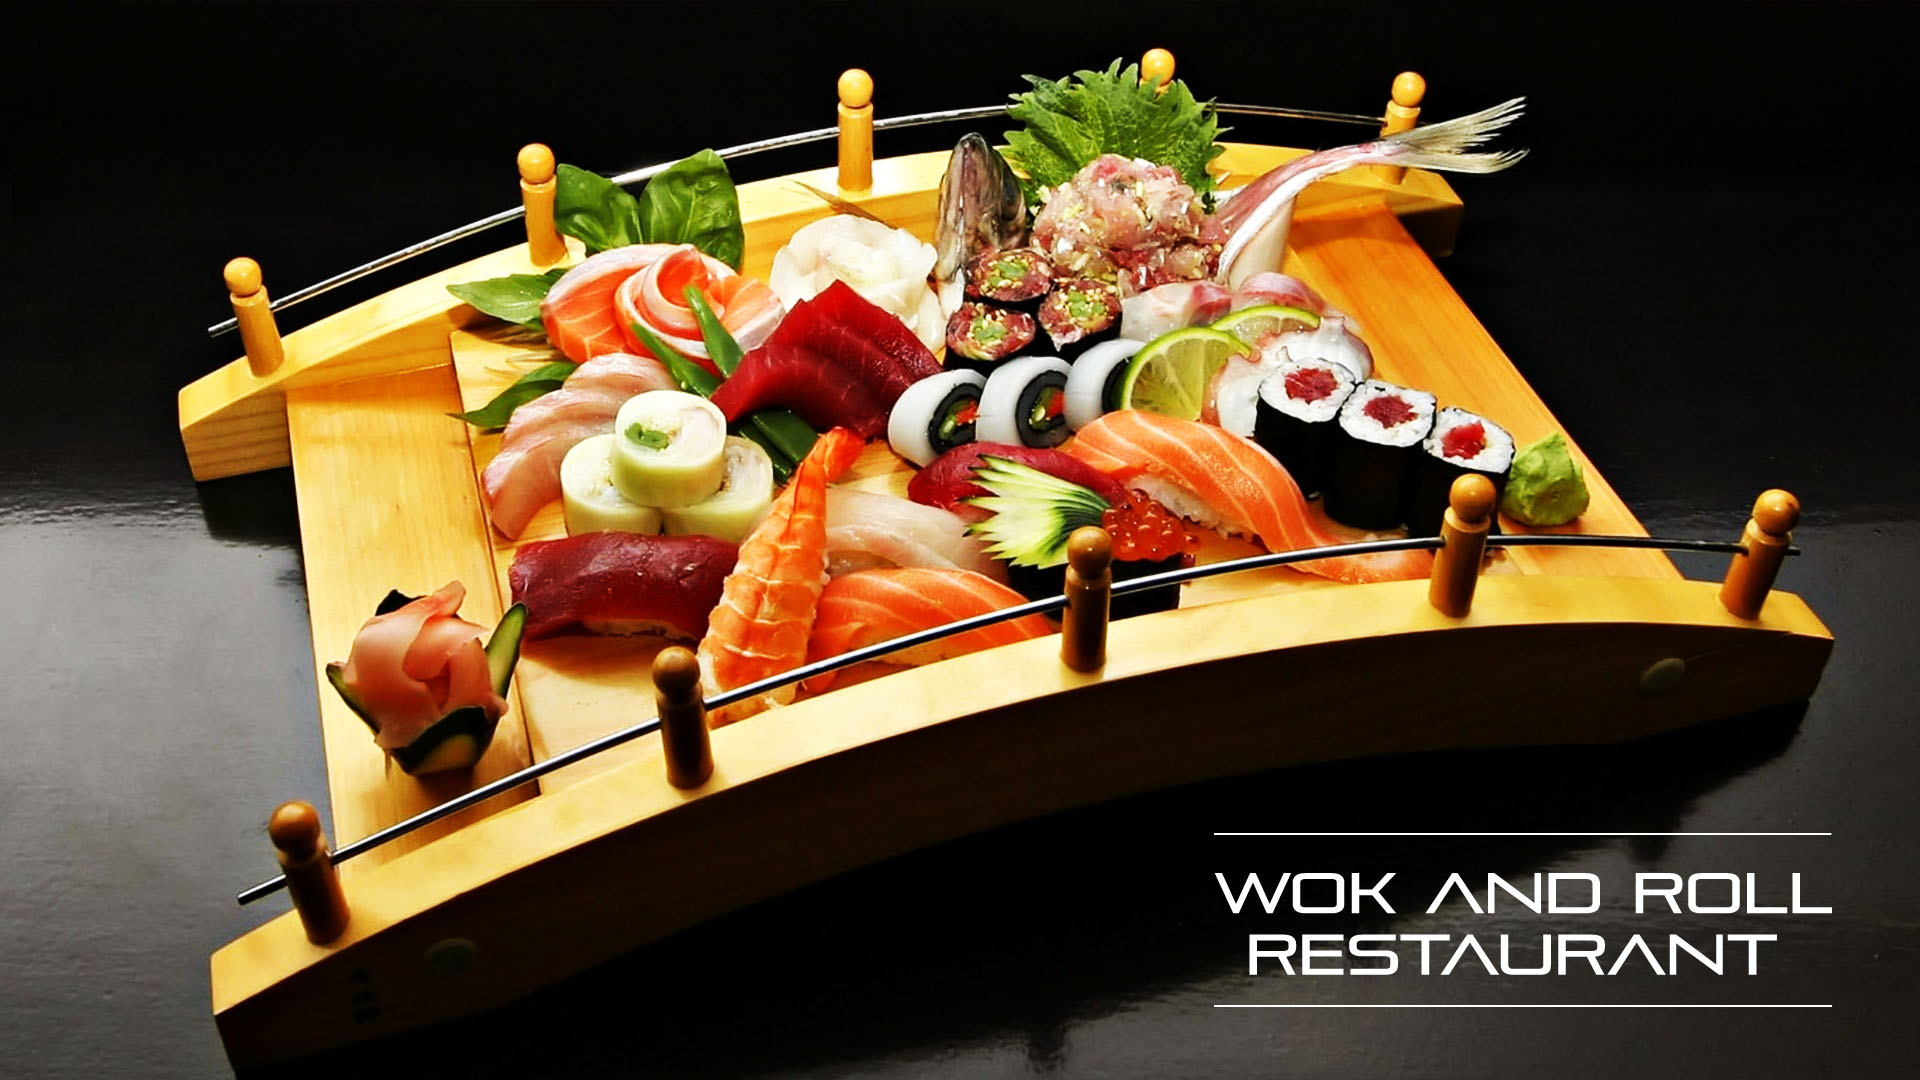 Restaurant, Serving the best of Japanese and Chinese cuisine.